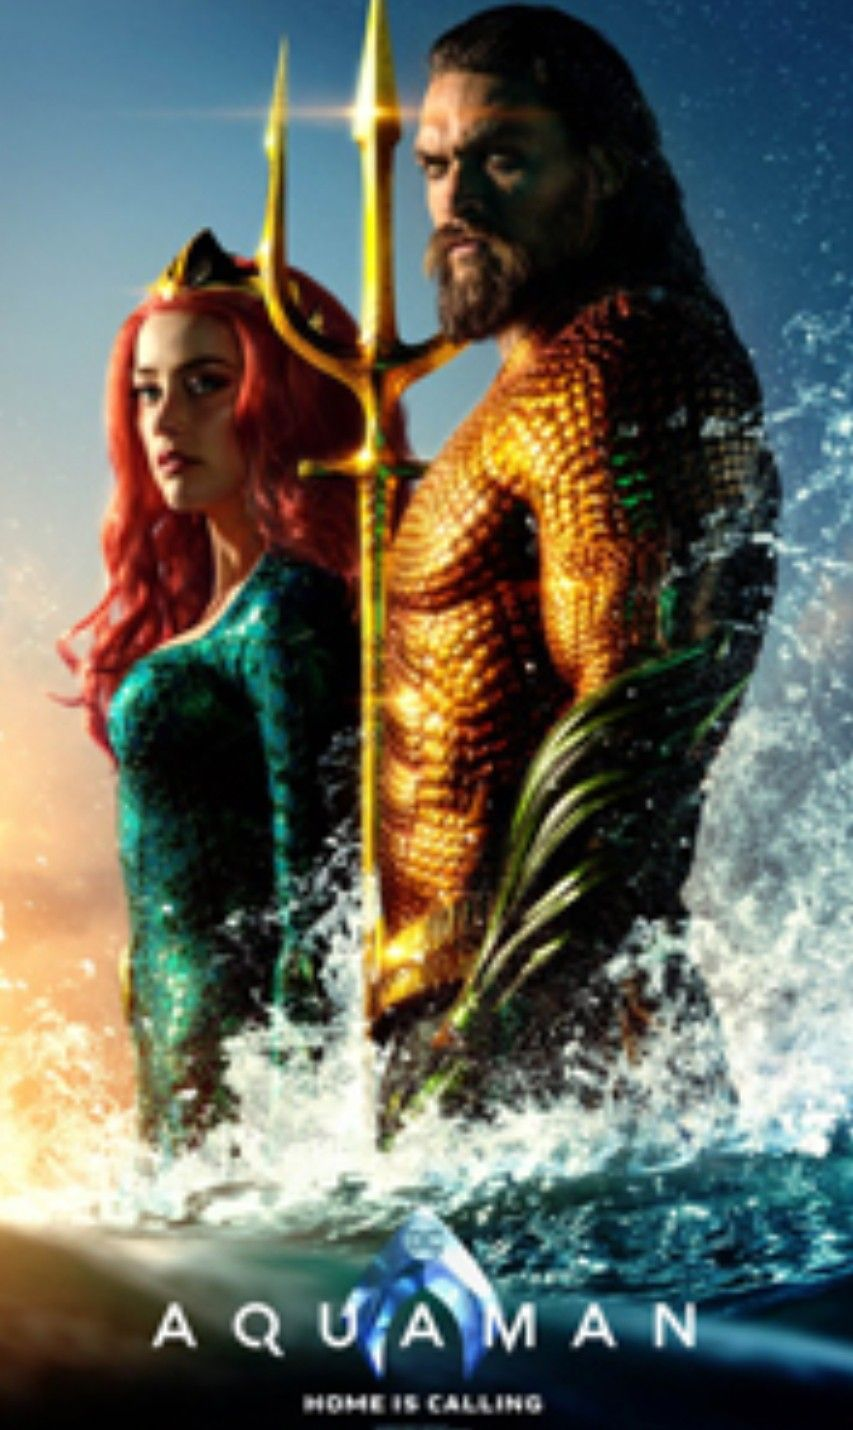 Pin By Vanessa Adams On Fav Movies With Images Aquaman Film